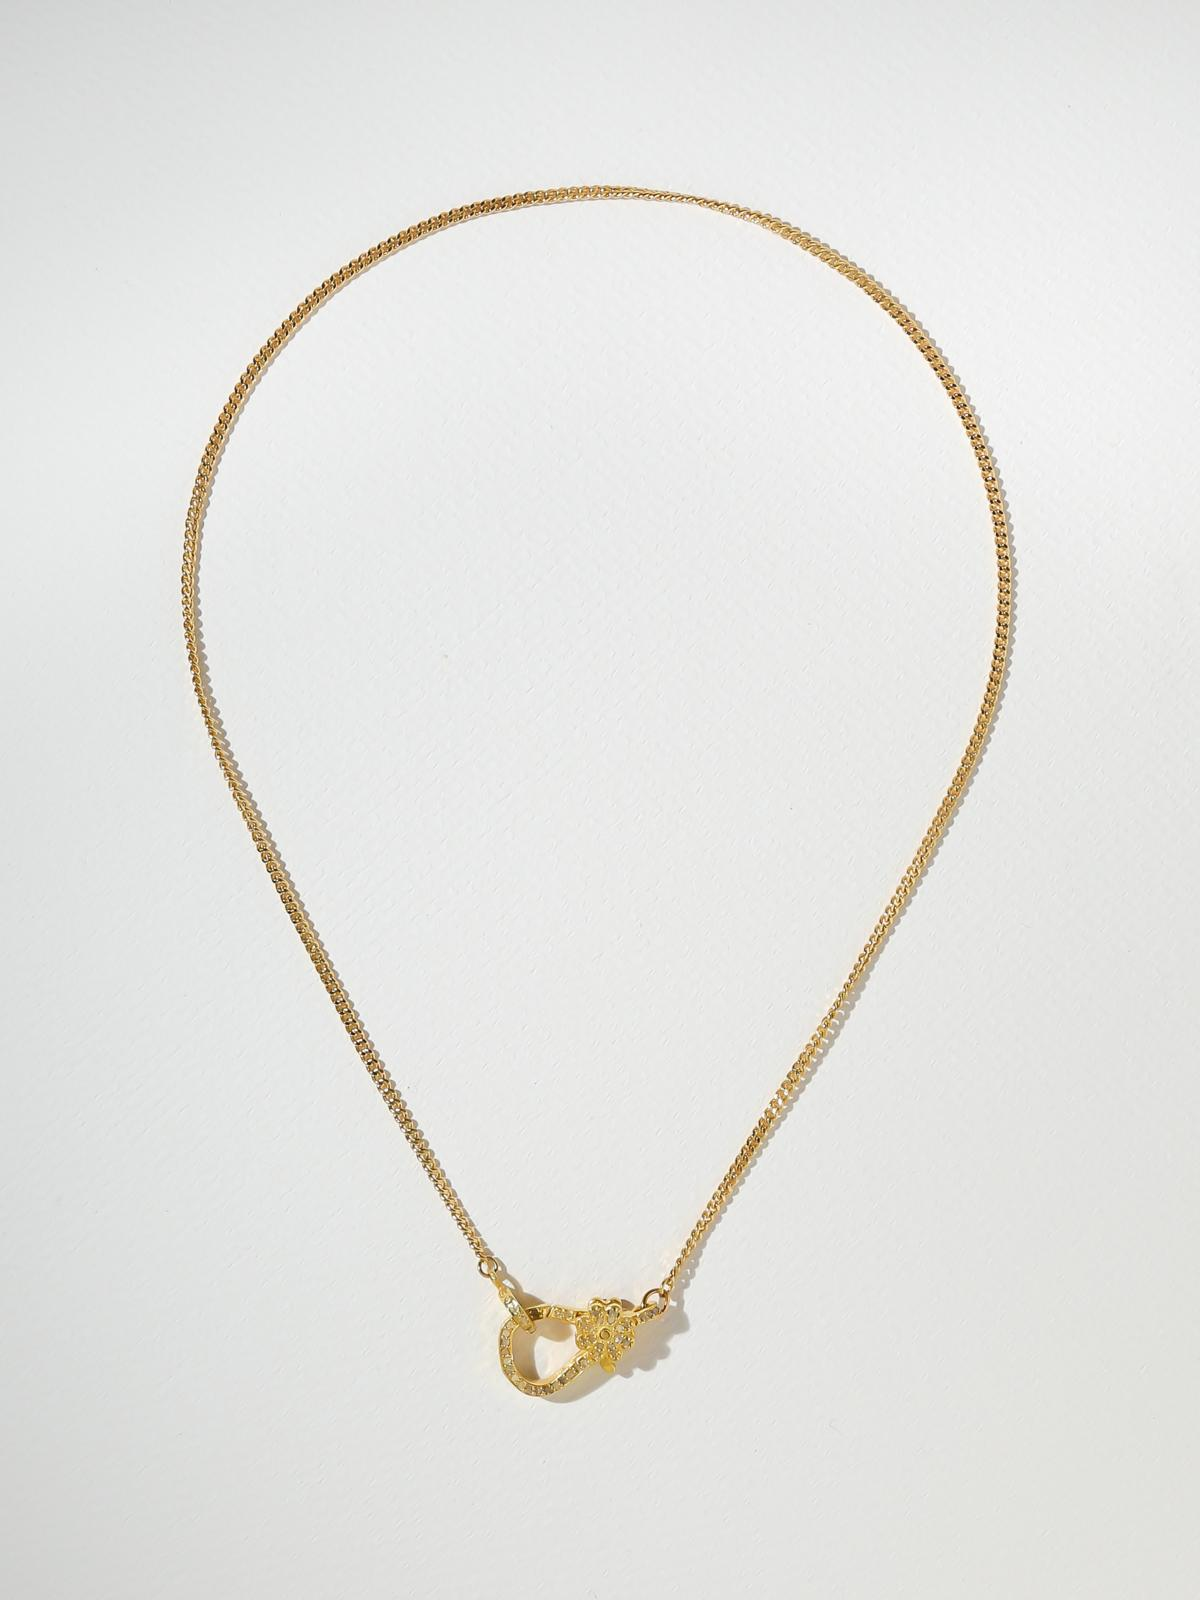 The Diamond Clasp Necklace